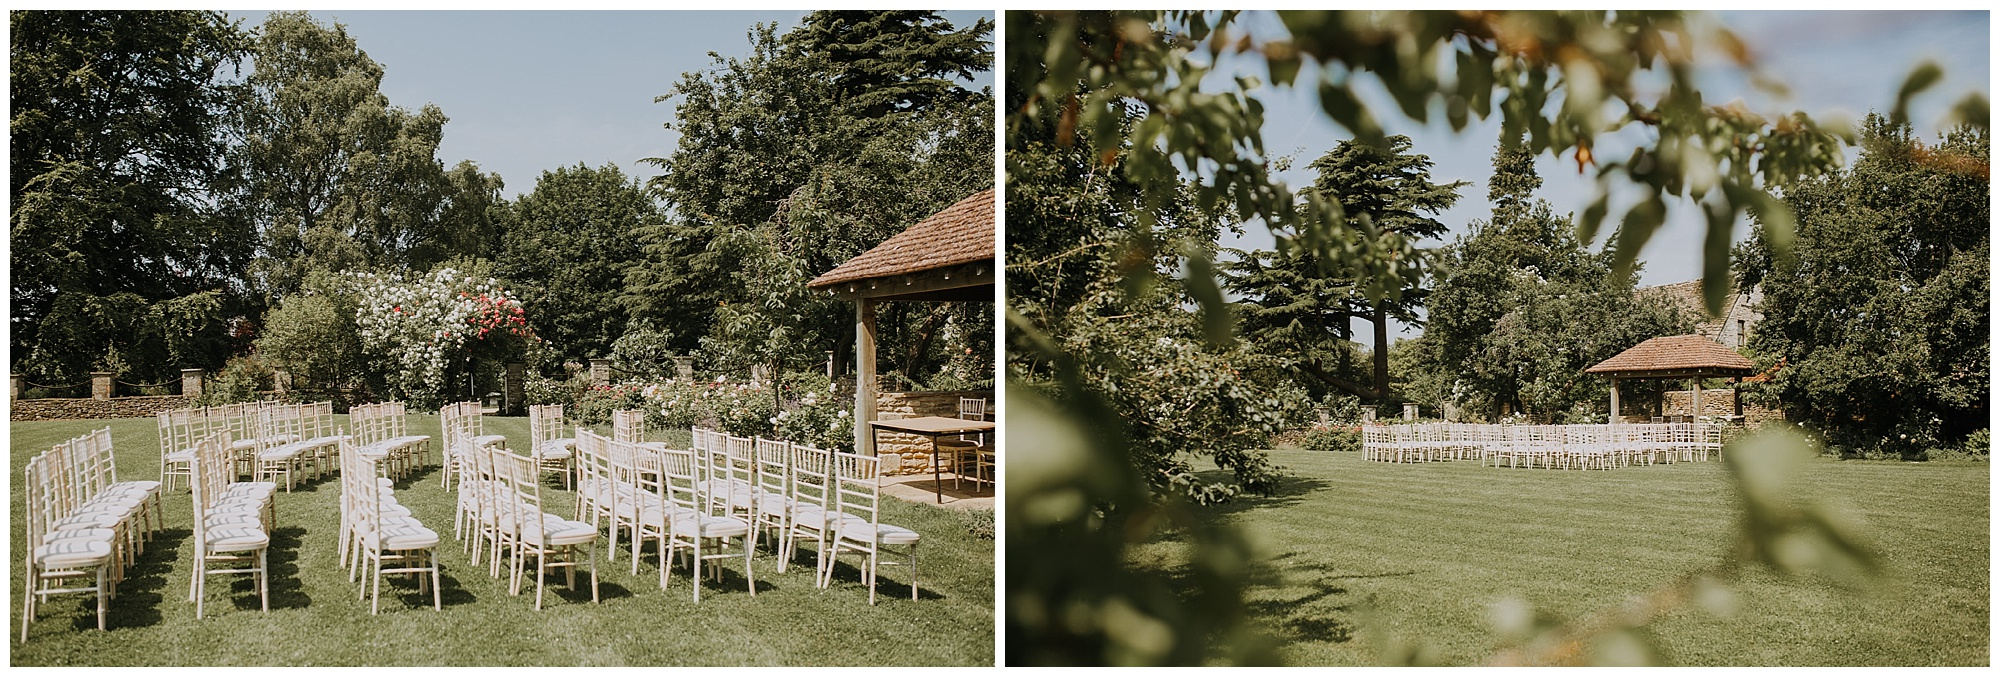 summer wedding outdoors with seating